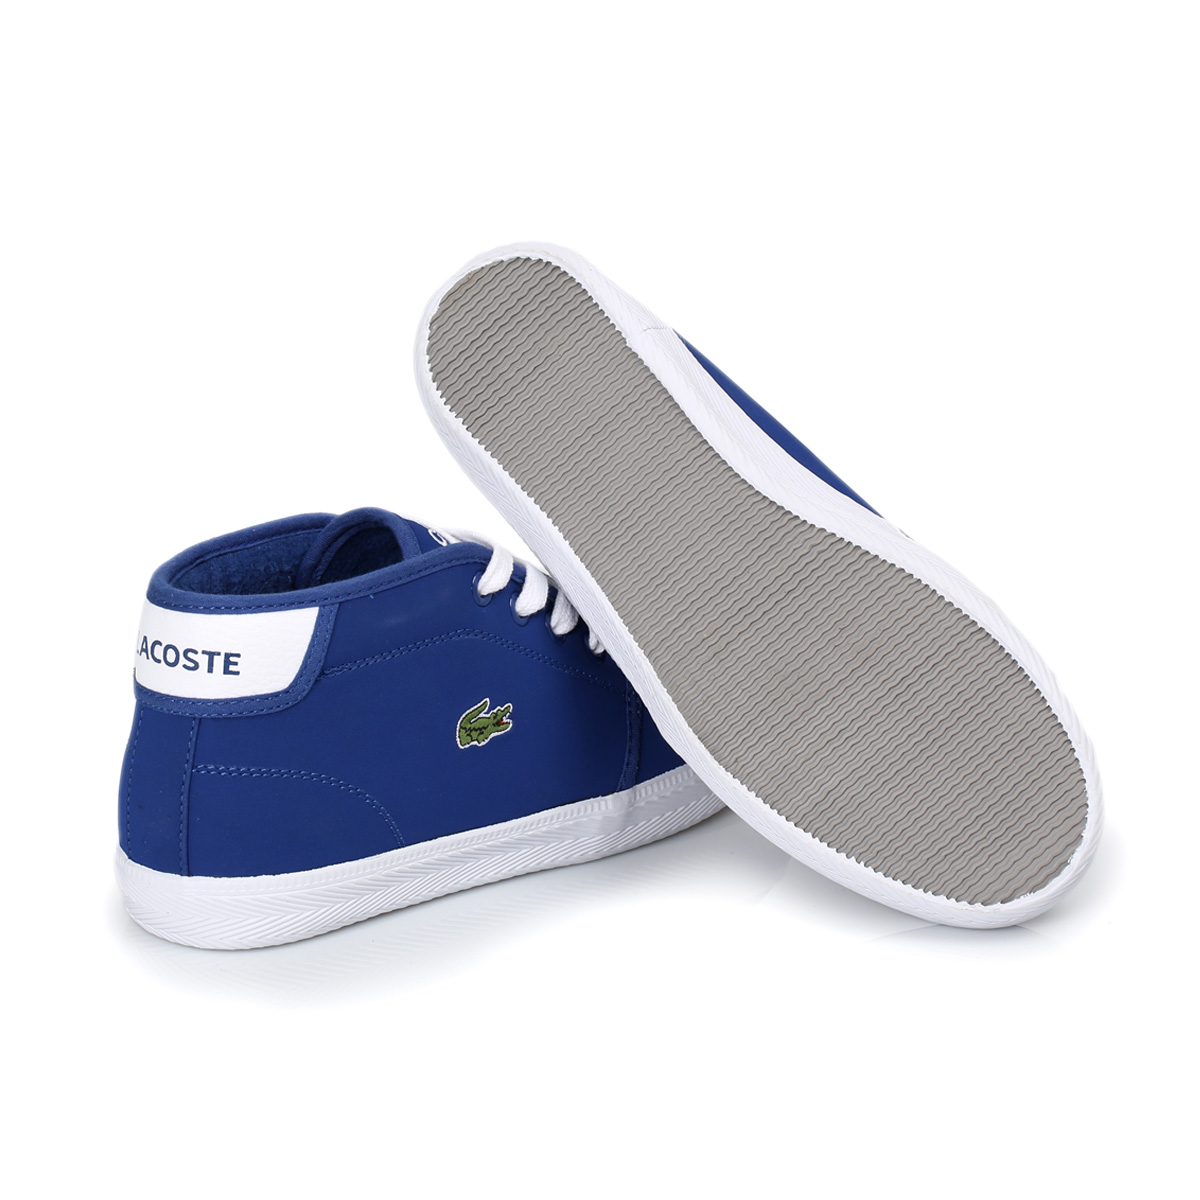 Mens Lacoste Shoes The Bay